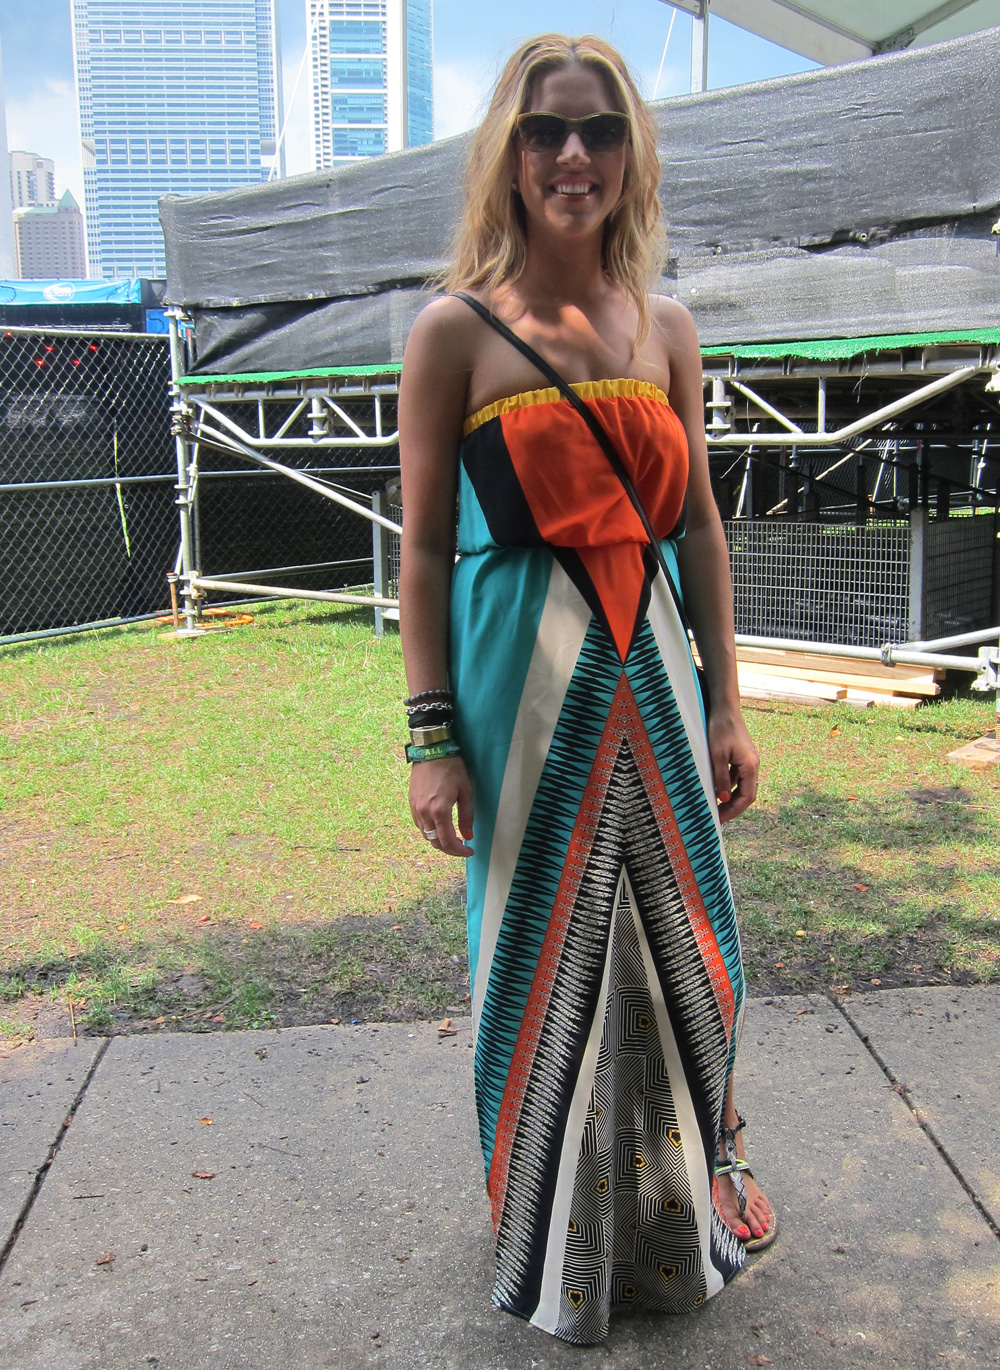 Behold the power of a maxi dress: Penny looked polished but was just as comfortable as her fellow festivalgoers.